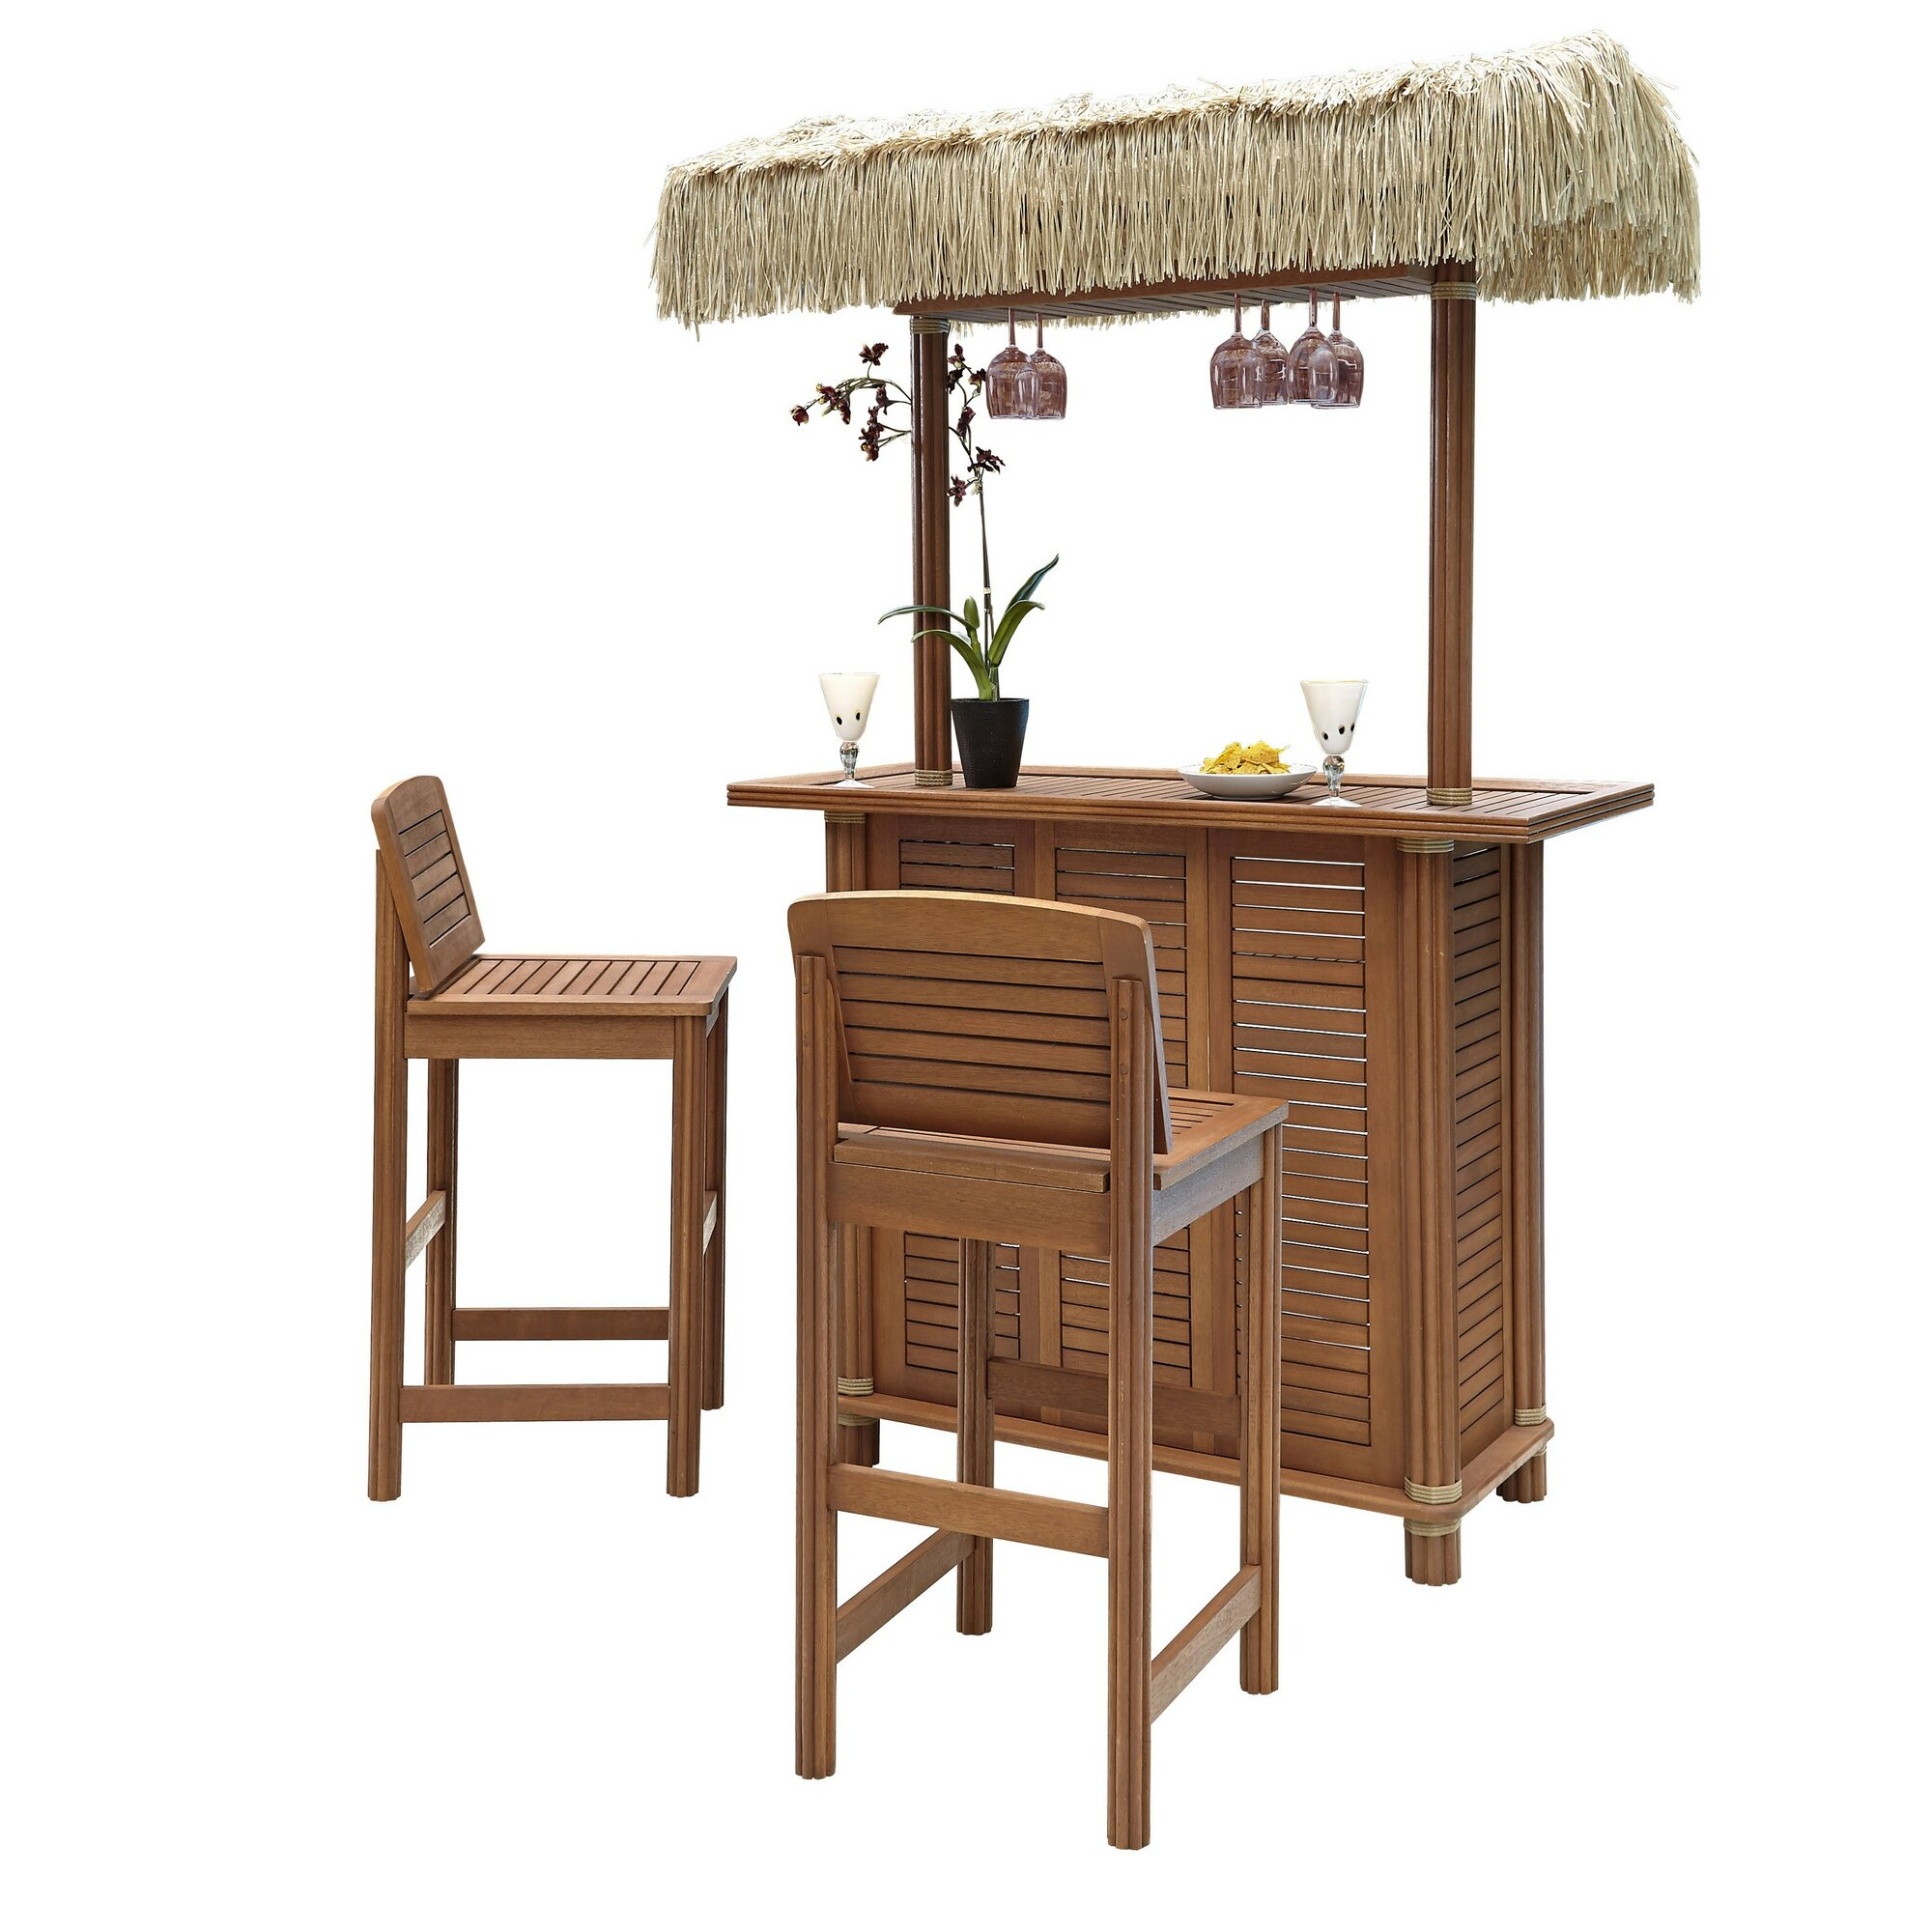 Home Styles Bali Hai 3 Piece Tiki Bar Set & Reviews